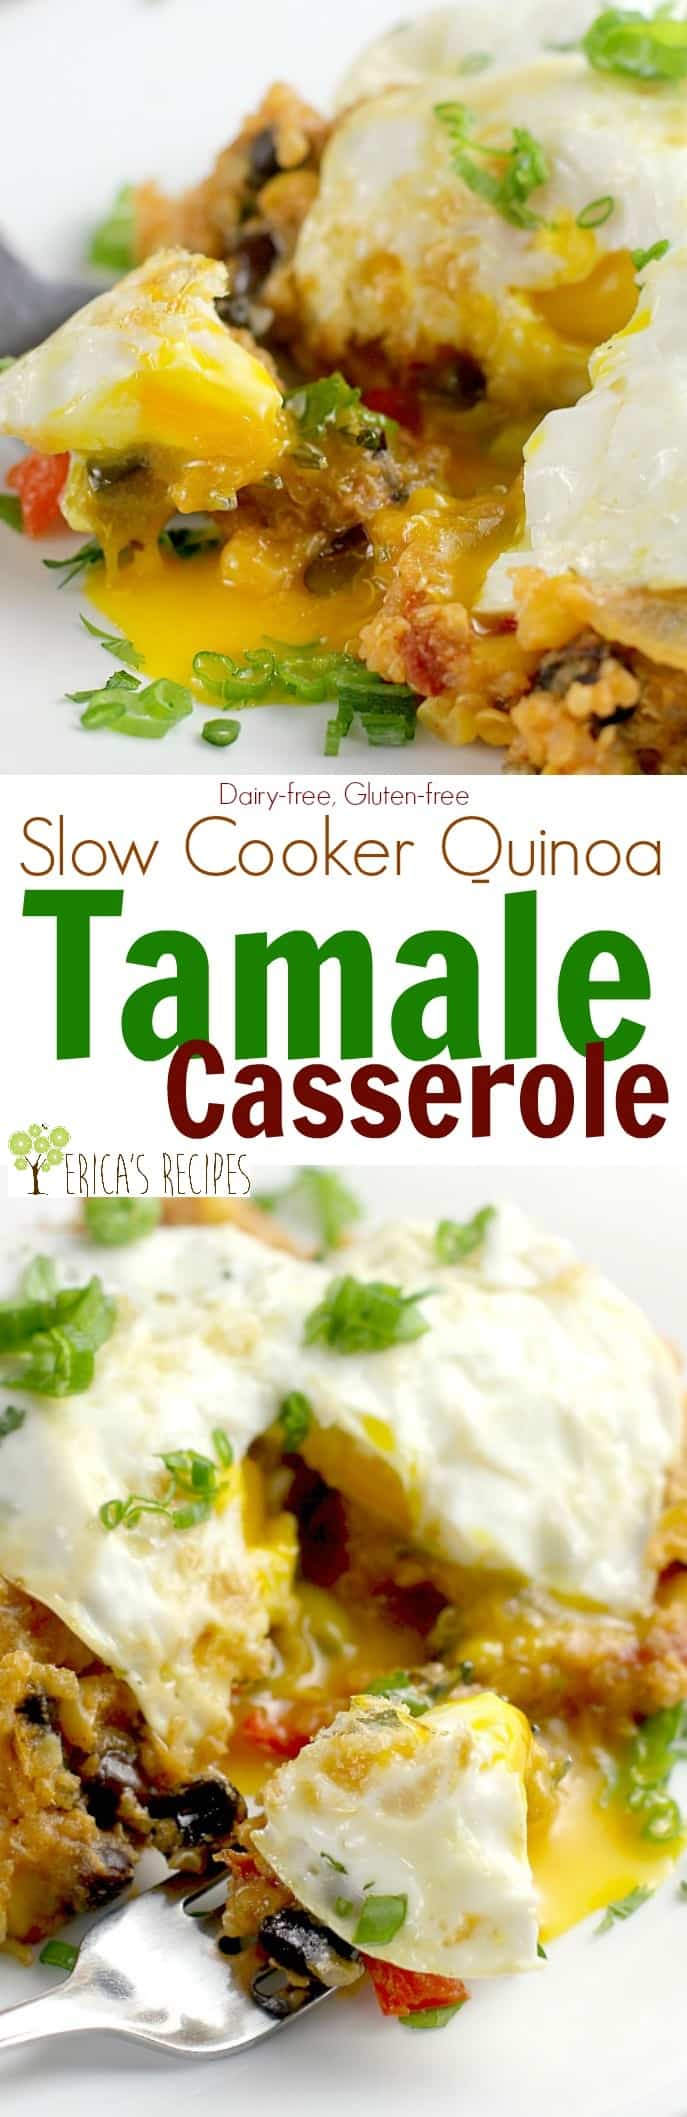 Slow Cooker Quinoa Tamale Casserole #31DaysWithRotel #ad @ro_tel @walmart